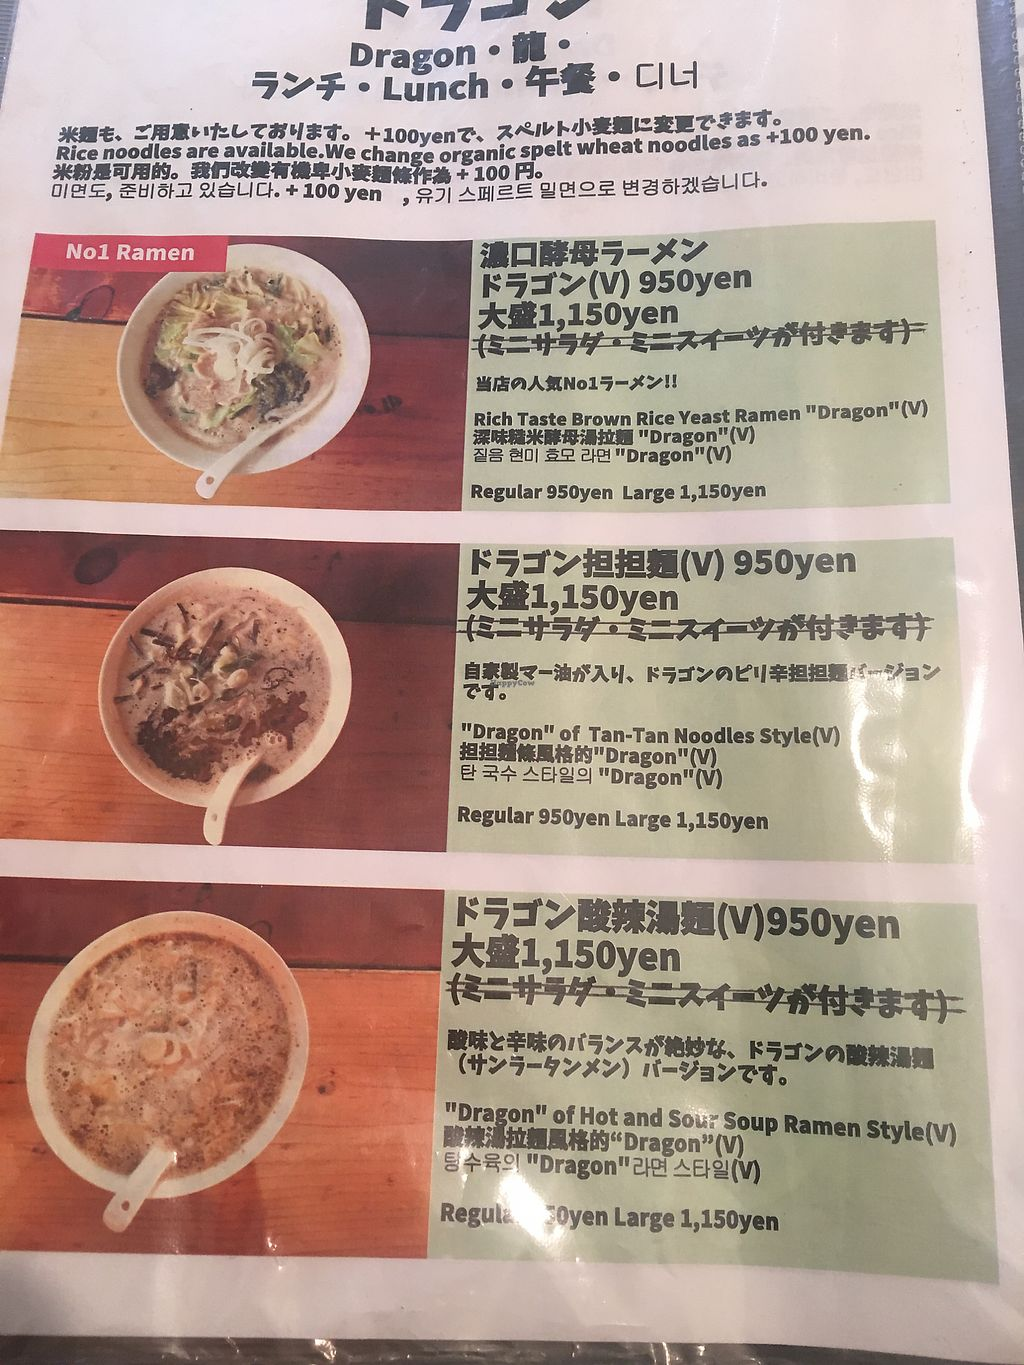 """Photo of Yakuzenshokudo Chabuzen  by <a href=""""/members/profile/robynie"""">robynie</a> <br/>Dragon style ramen menu <br/> May 19, 2018  - <a href='/contact/abuse/image/29862/401715'>Report</a>"""